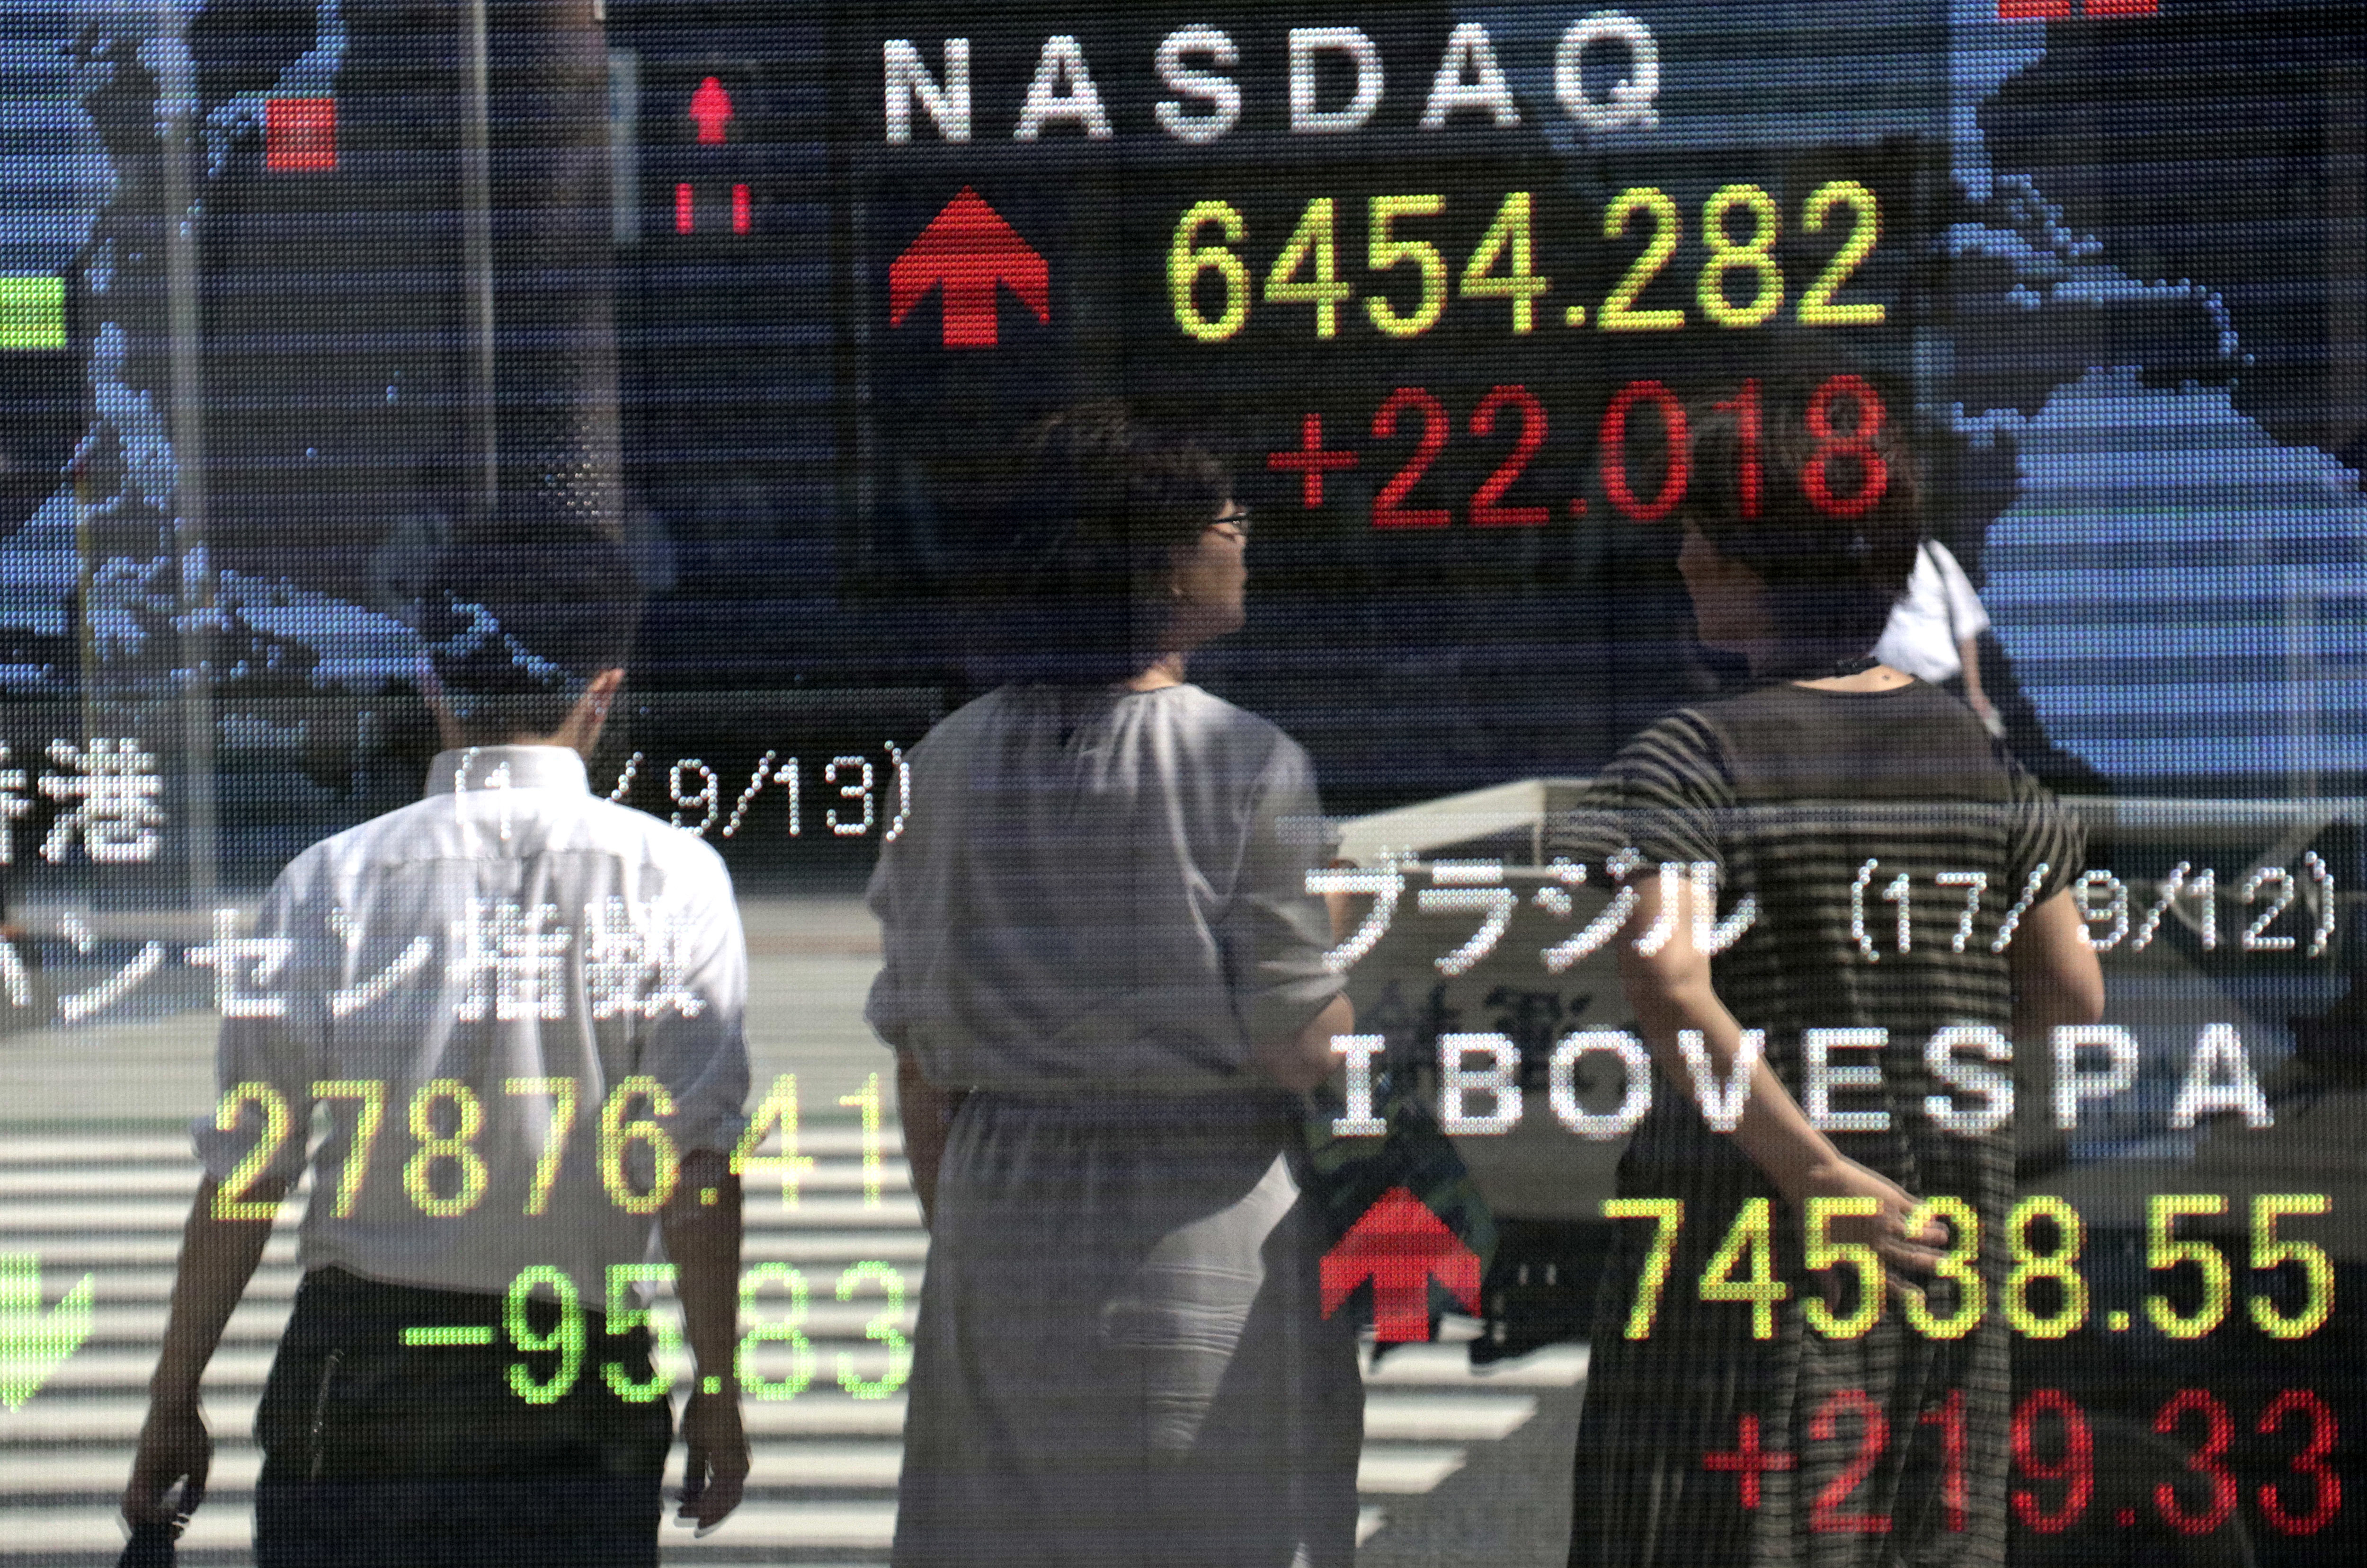 Japan Financial Markets People are reflected on an electronic stock indicator of a securities firm in Tokyo, Wednesday, Sept. 13, 2017. Most Asian stock markets were higher Wednesday after U.S. shares rose on encouraging jobs data while worries about North Korea and twin hurricane disasters eased. (AP Photo/Shizuo Kambayashi)